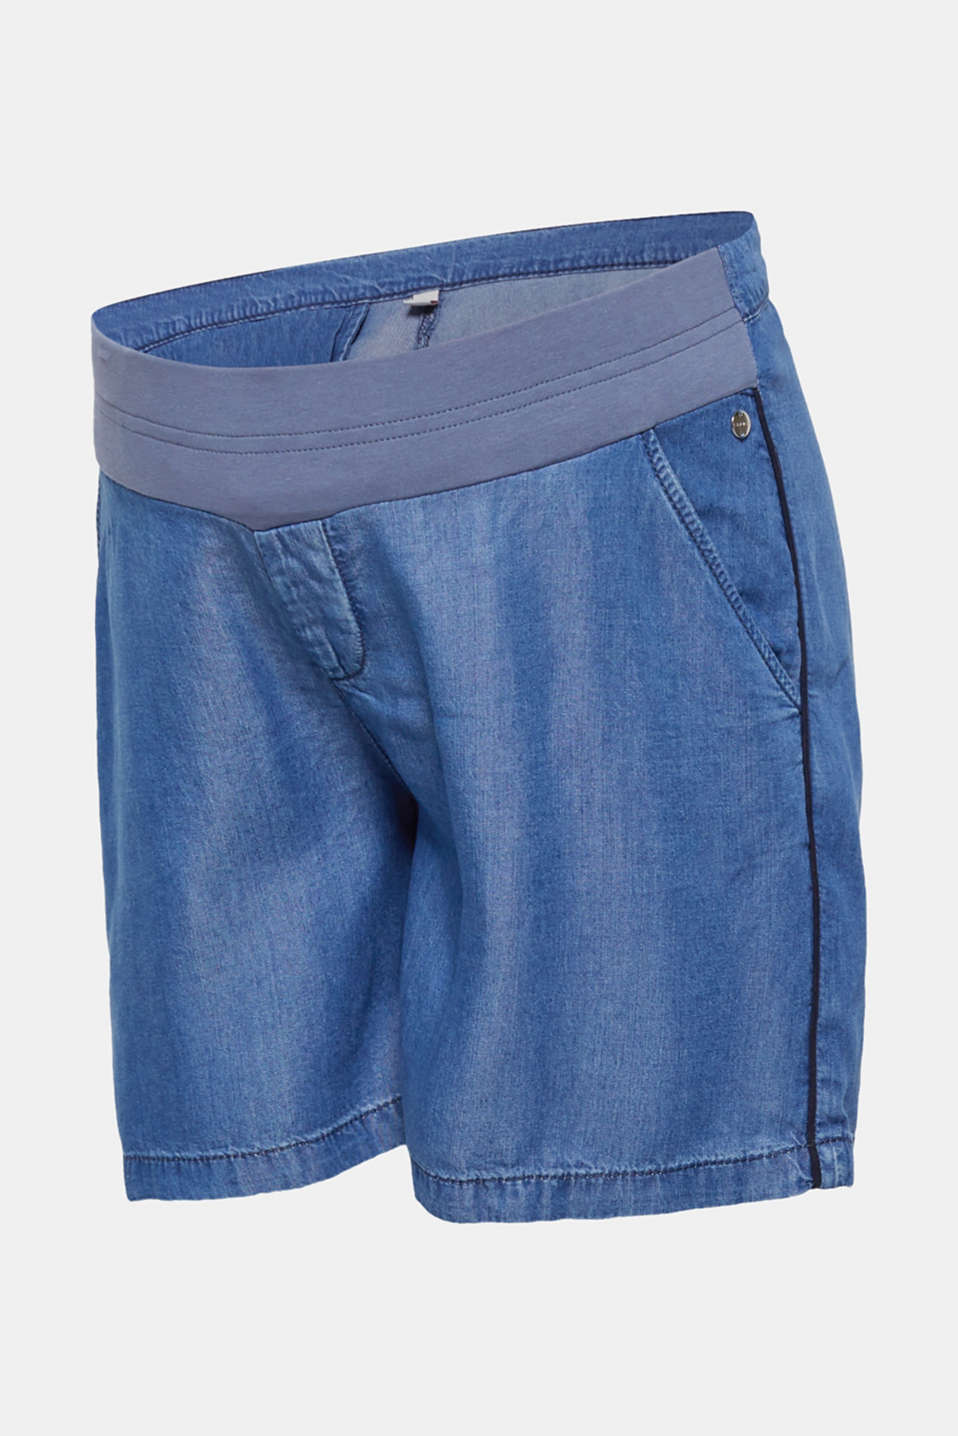 Esprit - Denim-effect shorts, 100% lyocell